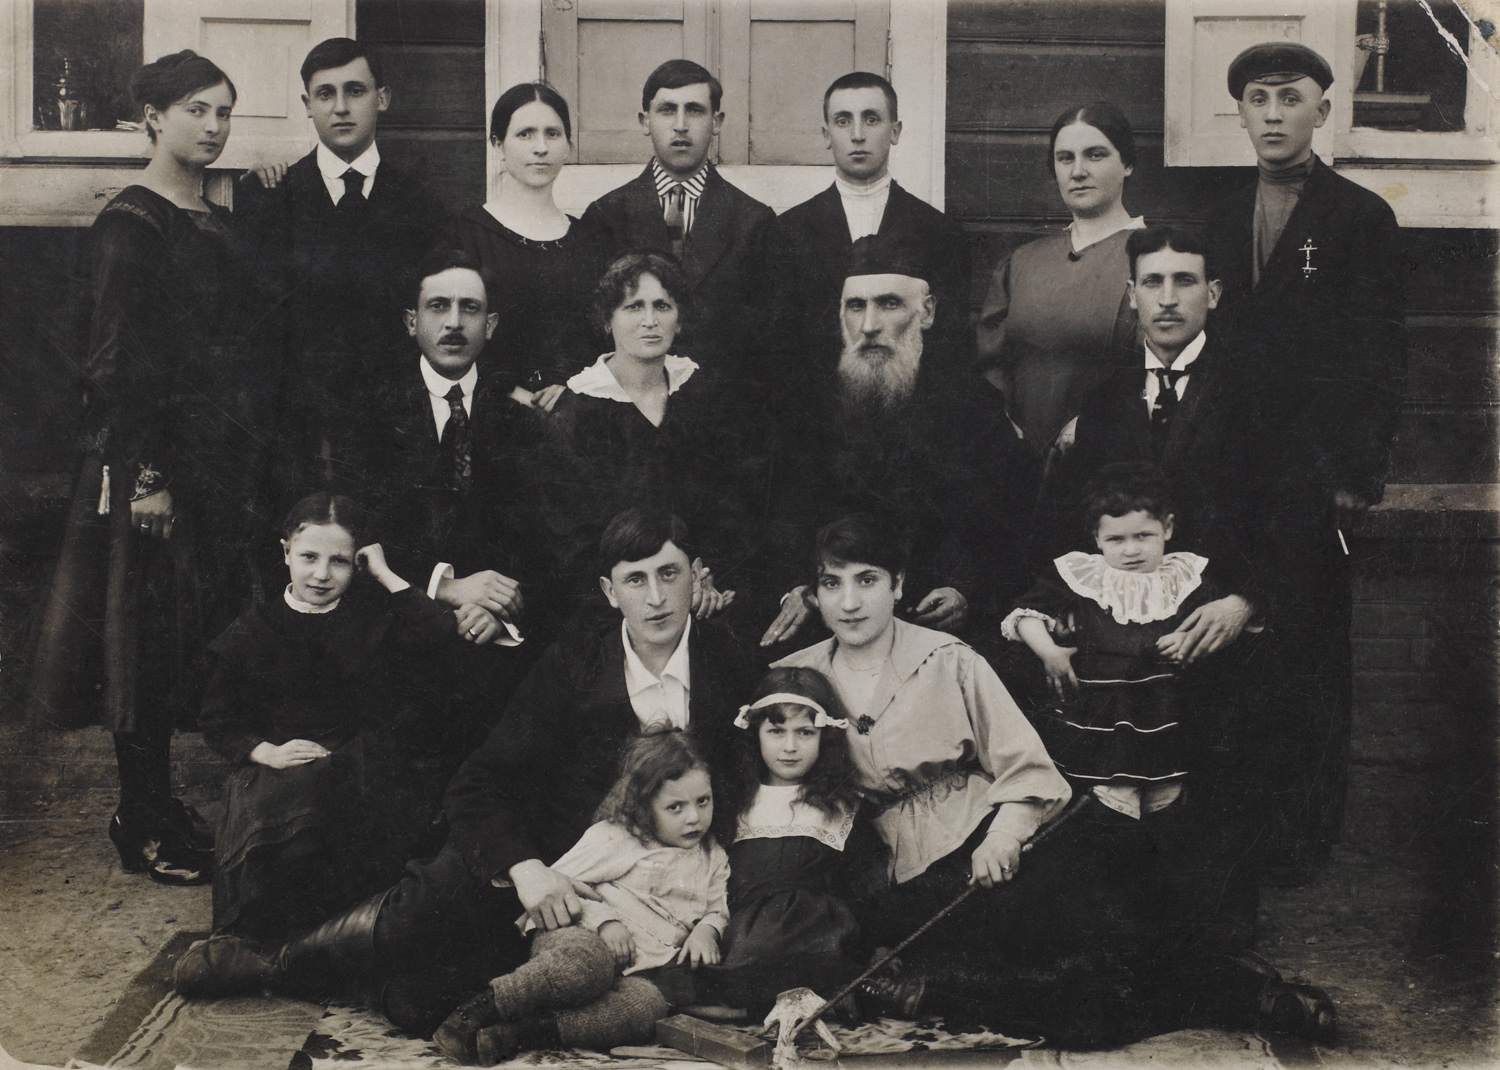 Family - Keidan, Lithuania, circa 1920